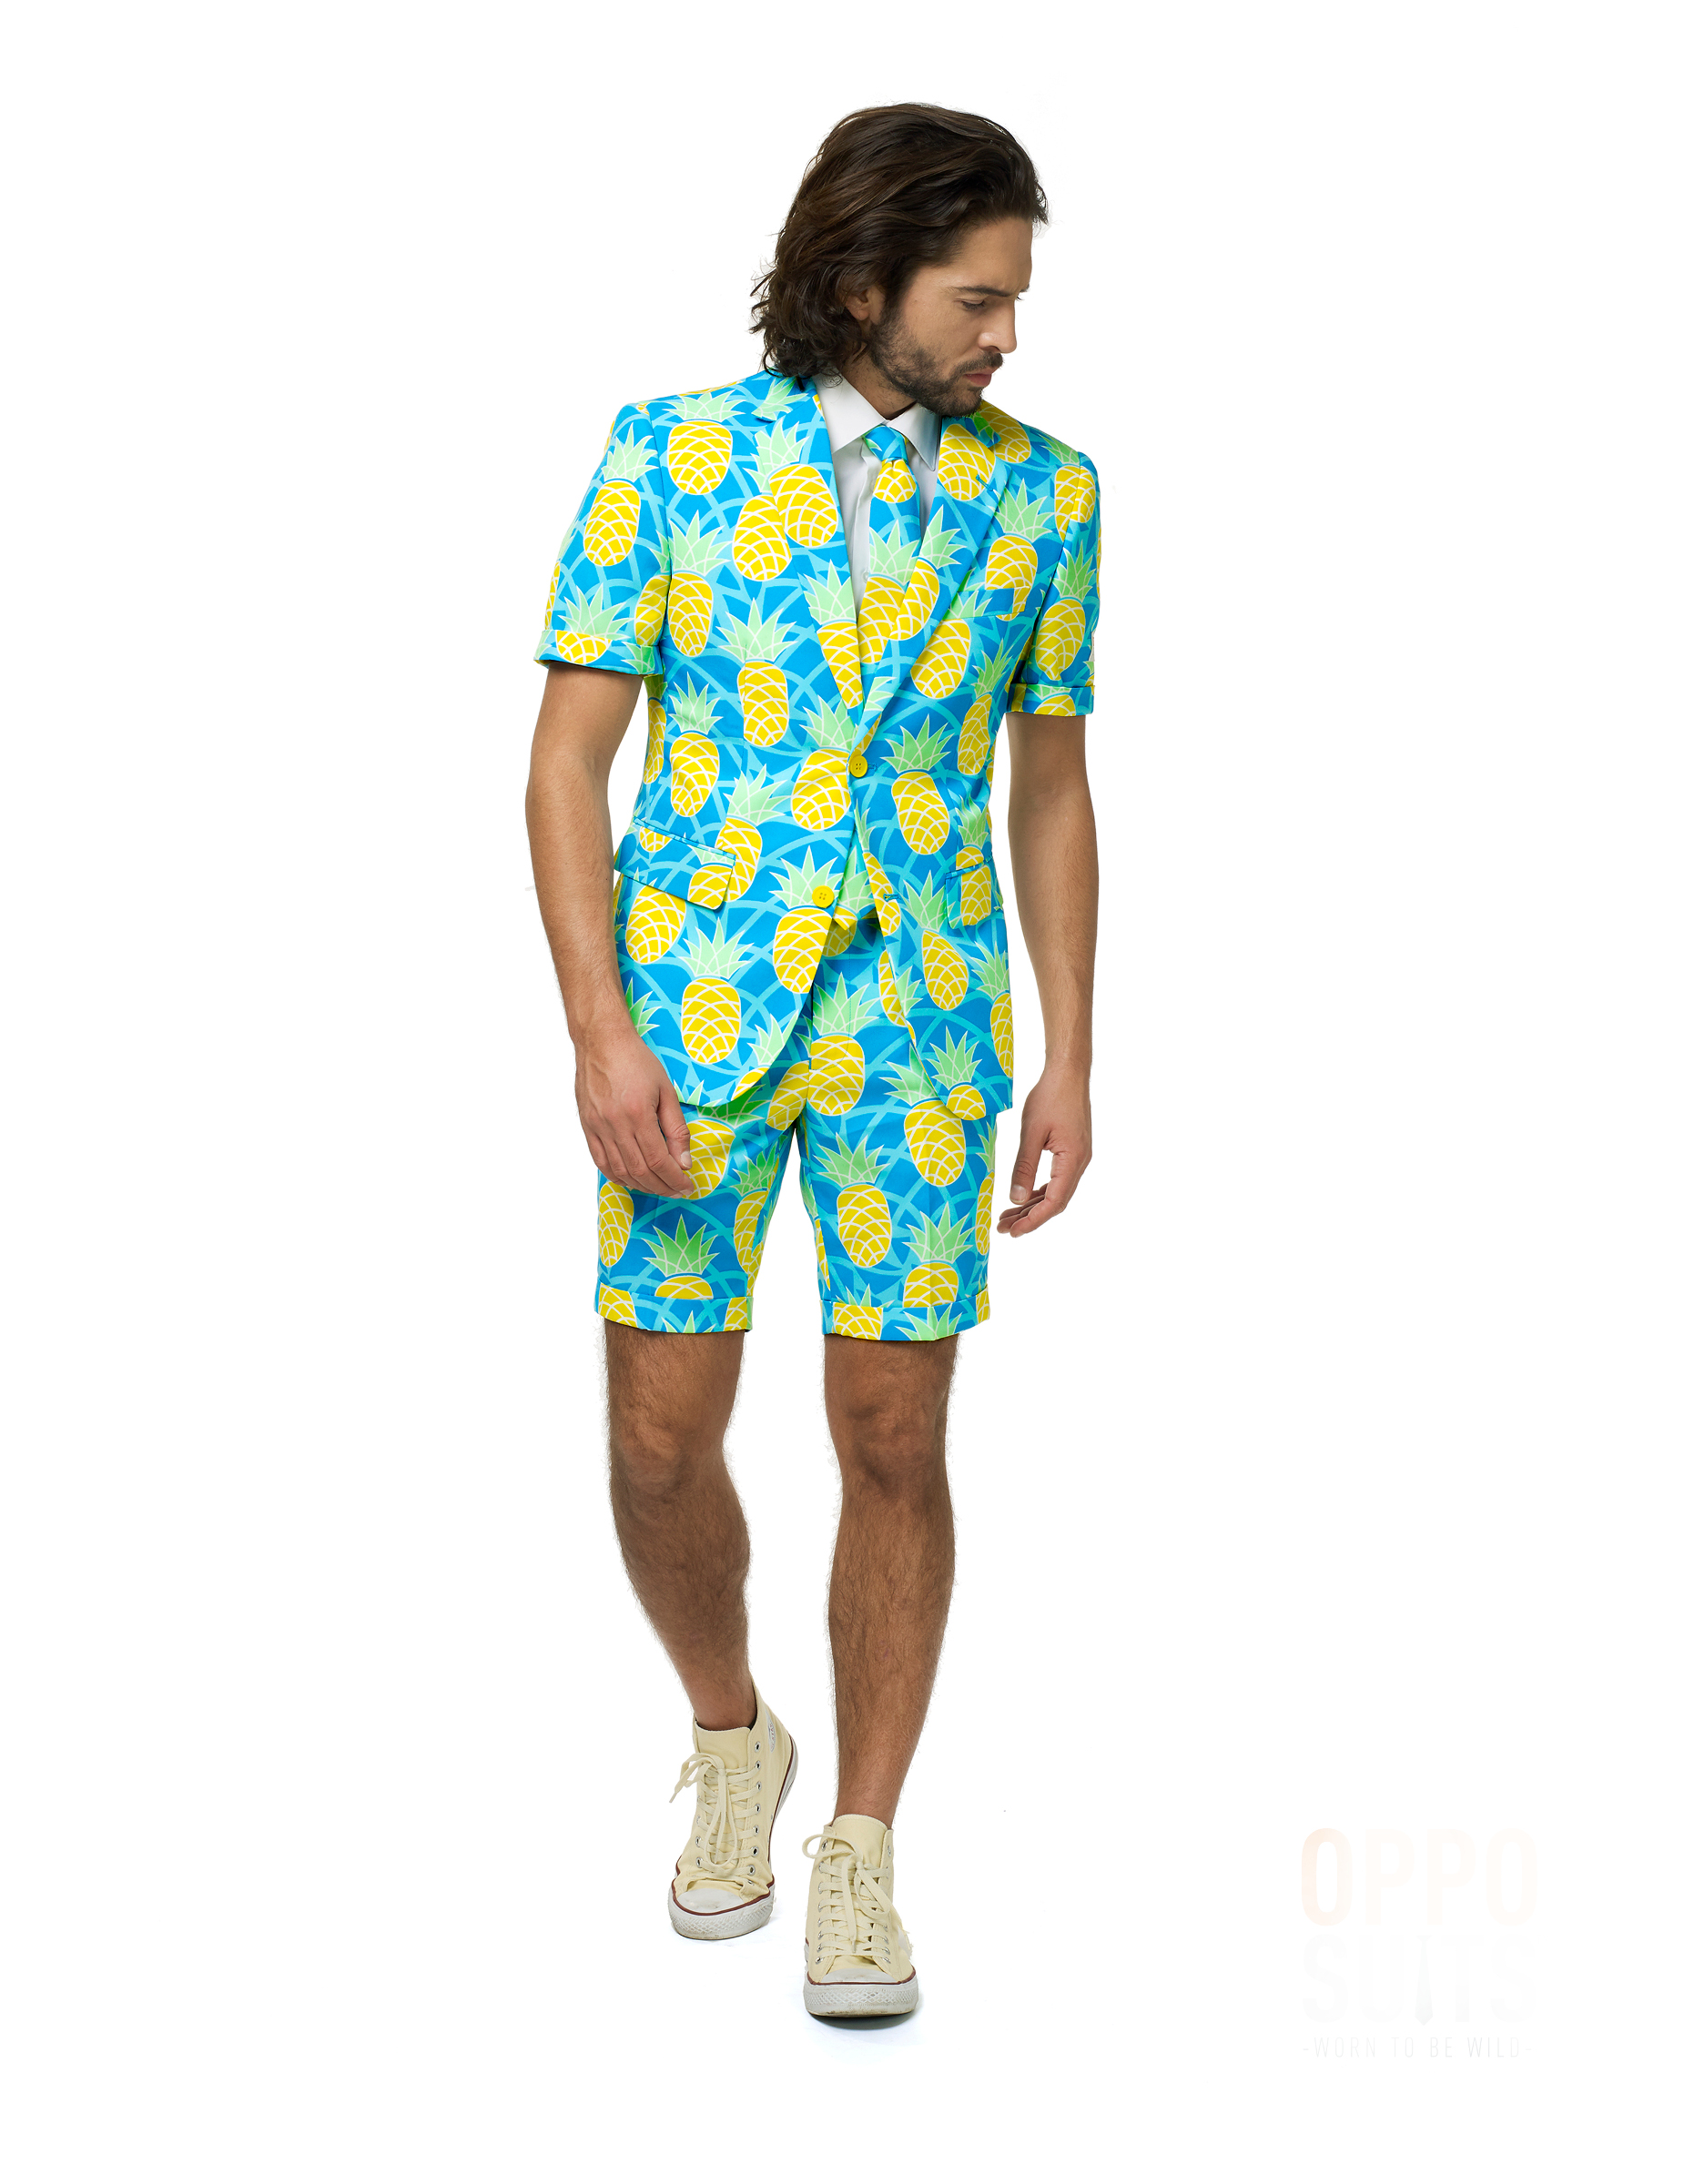 Costume Dété Mr Shineapple Homme Opposuits